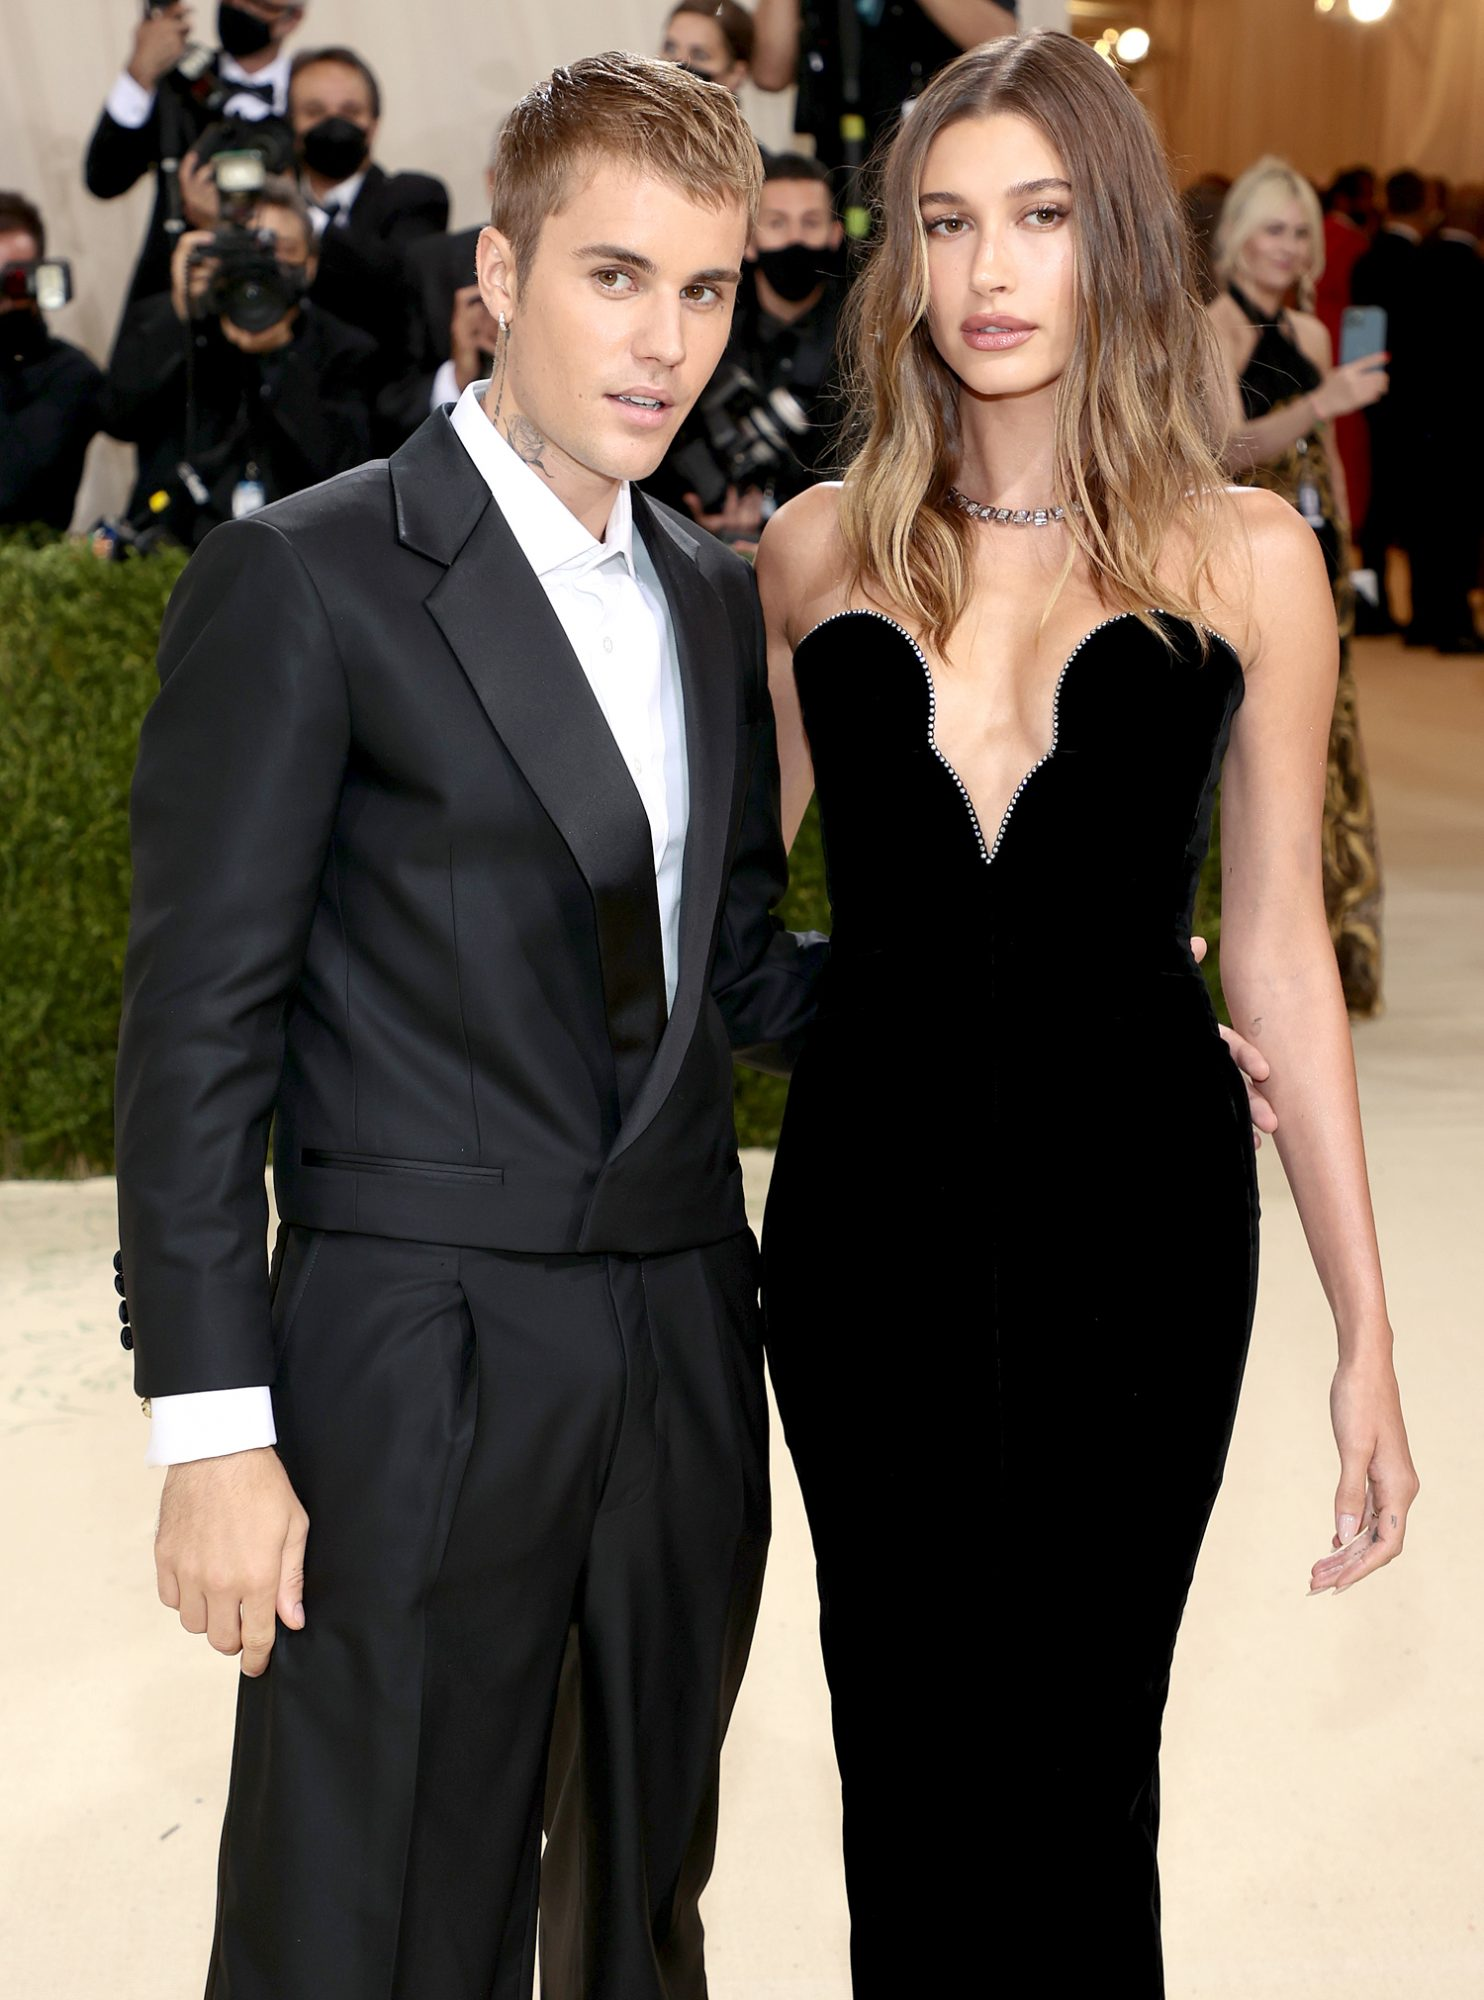 Justin Bieber and Hailey Bieber attend The 2021 Met Gala